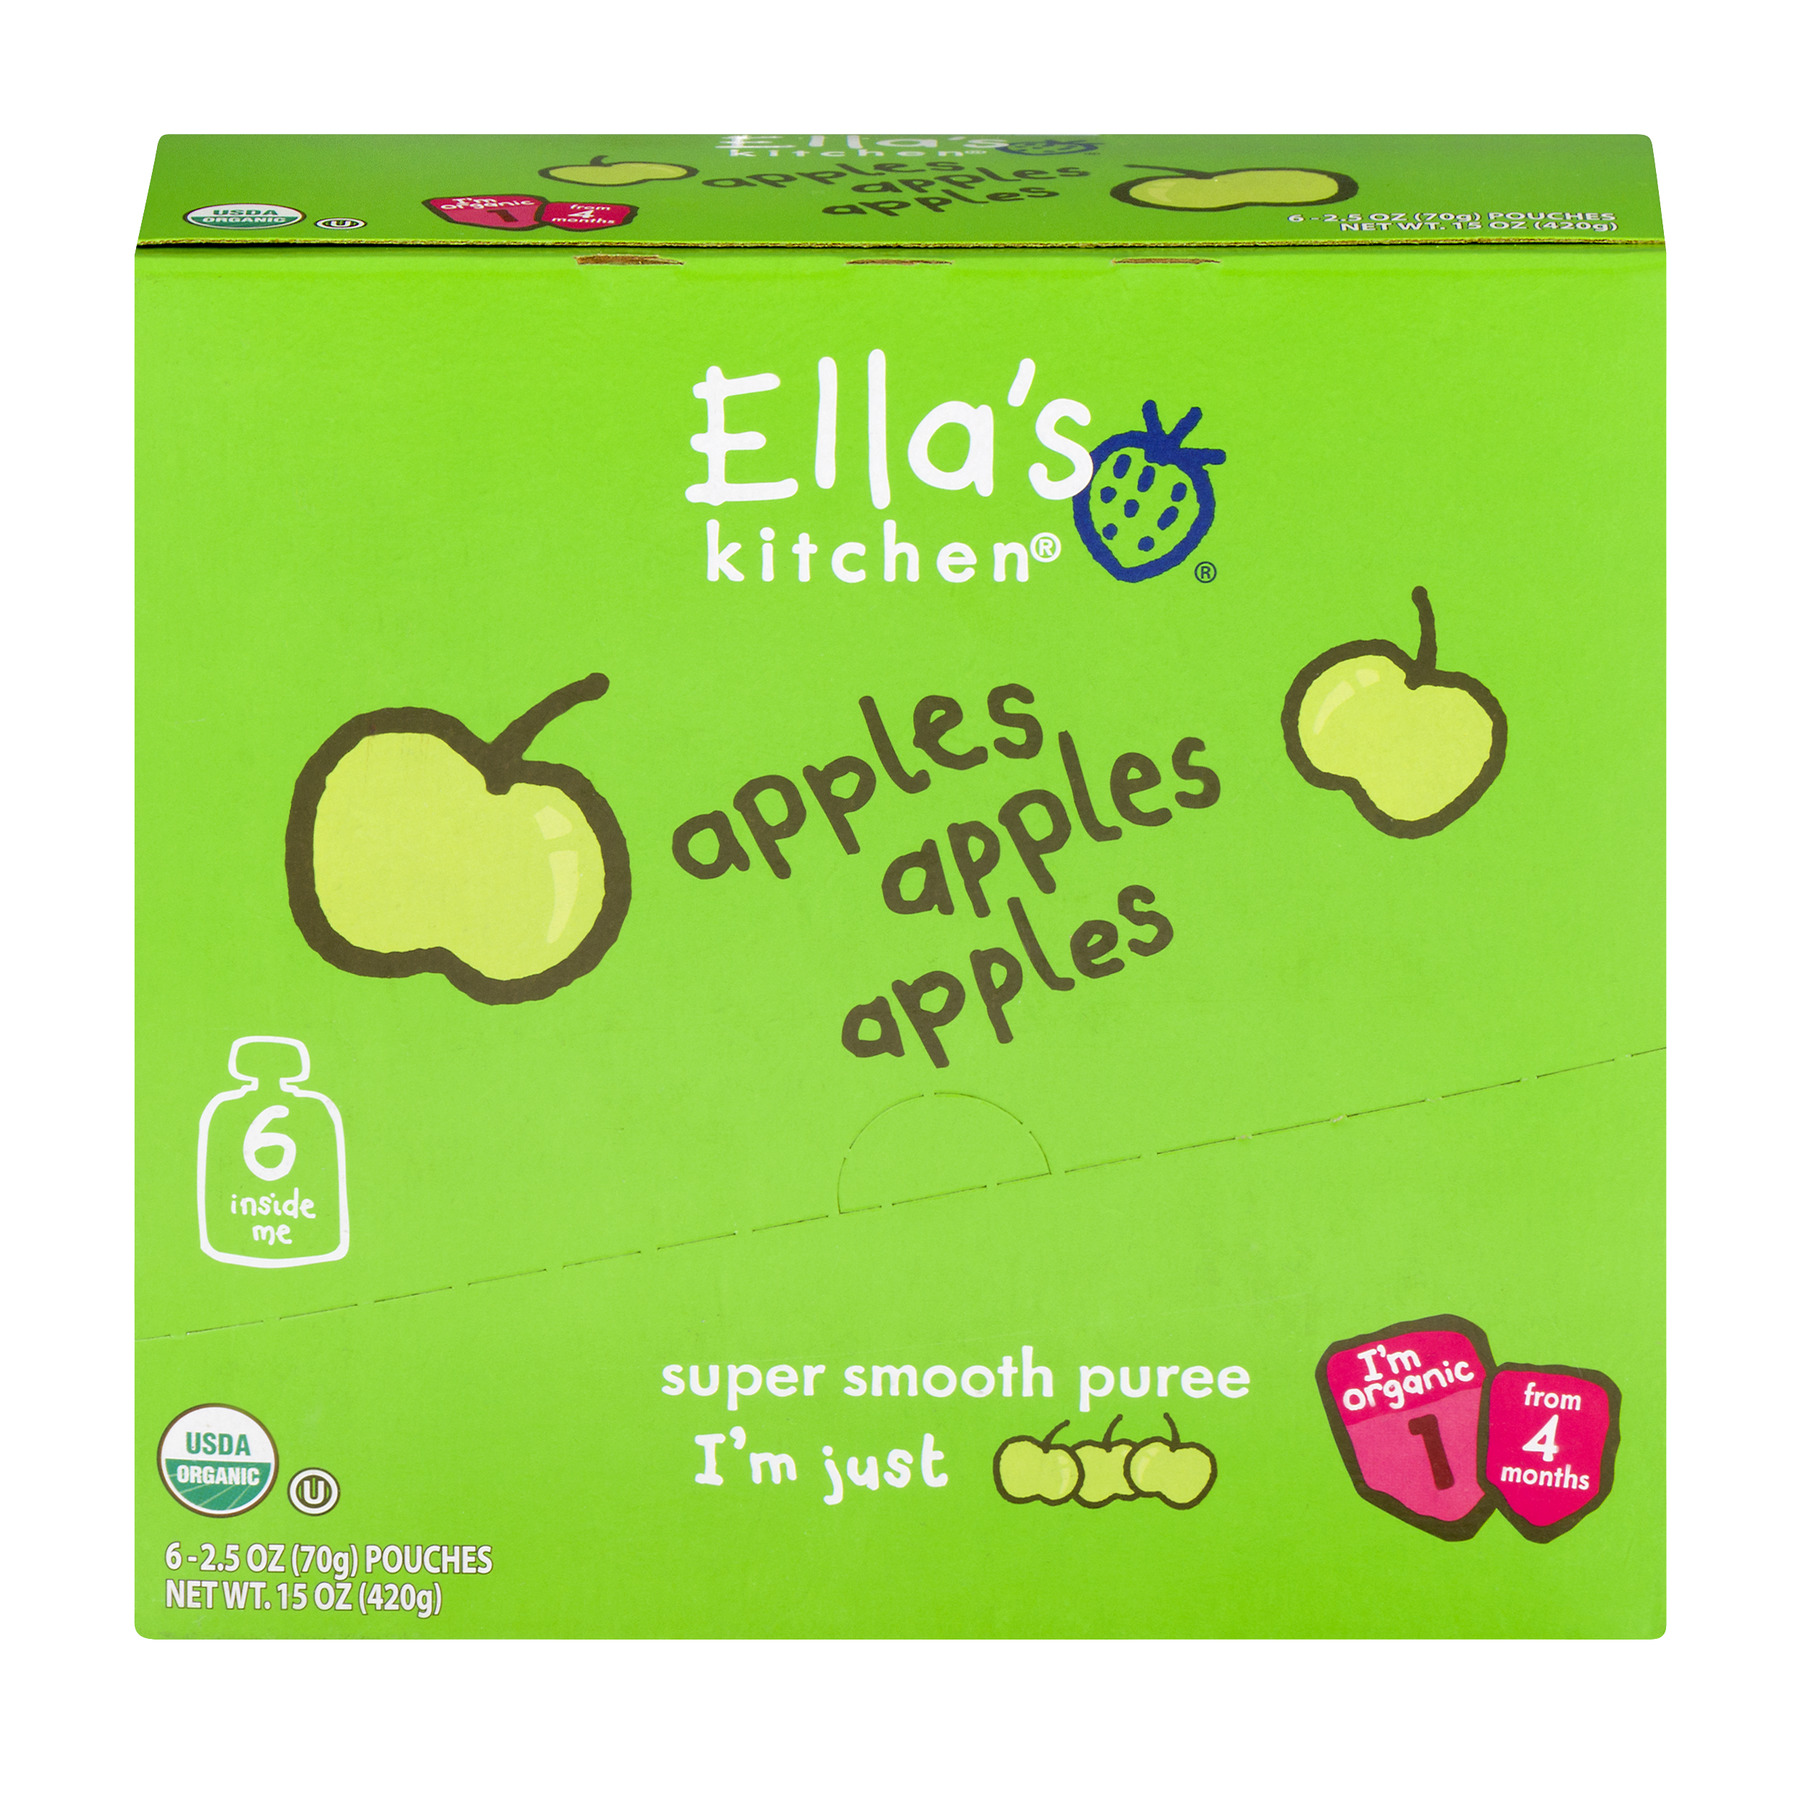 Ella's Kitchen 4+ Months Organic Baby Food, Apples Apples Apples, 2.5 oz. (Pack of 6)